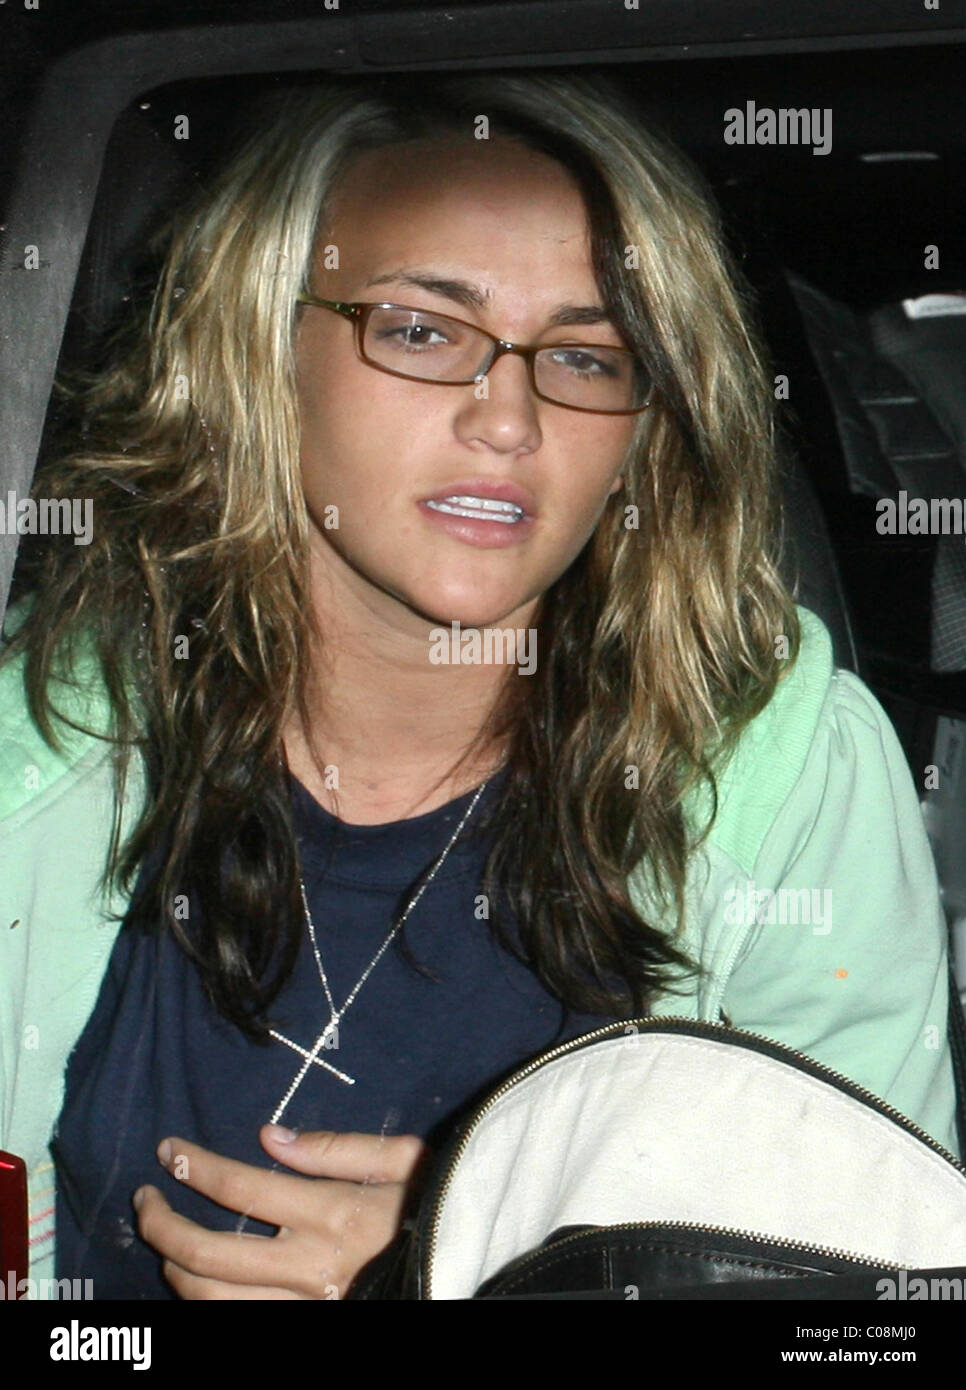 Britney Spears 16 Year Old Sister Pregnant Britney Spears Stock Photo Alamy